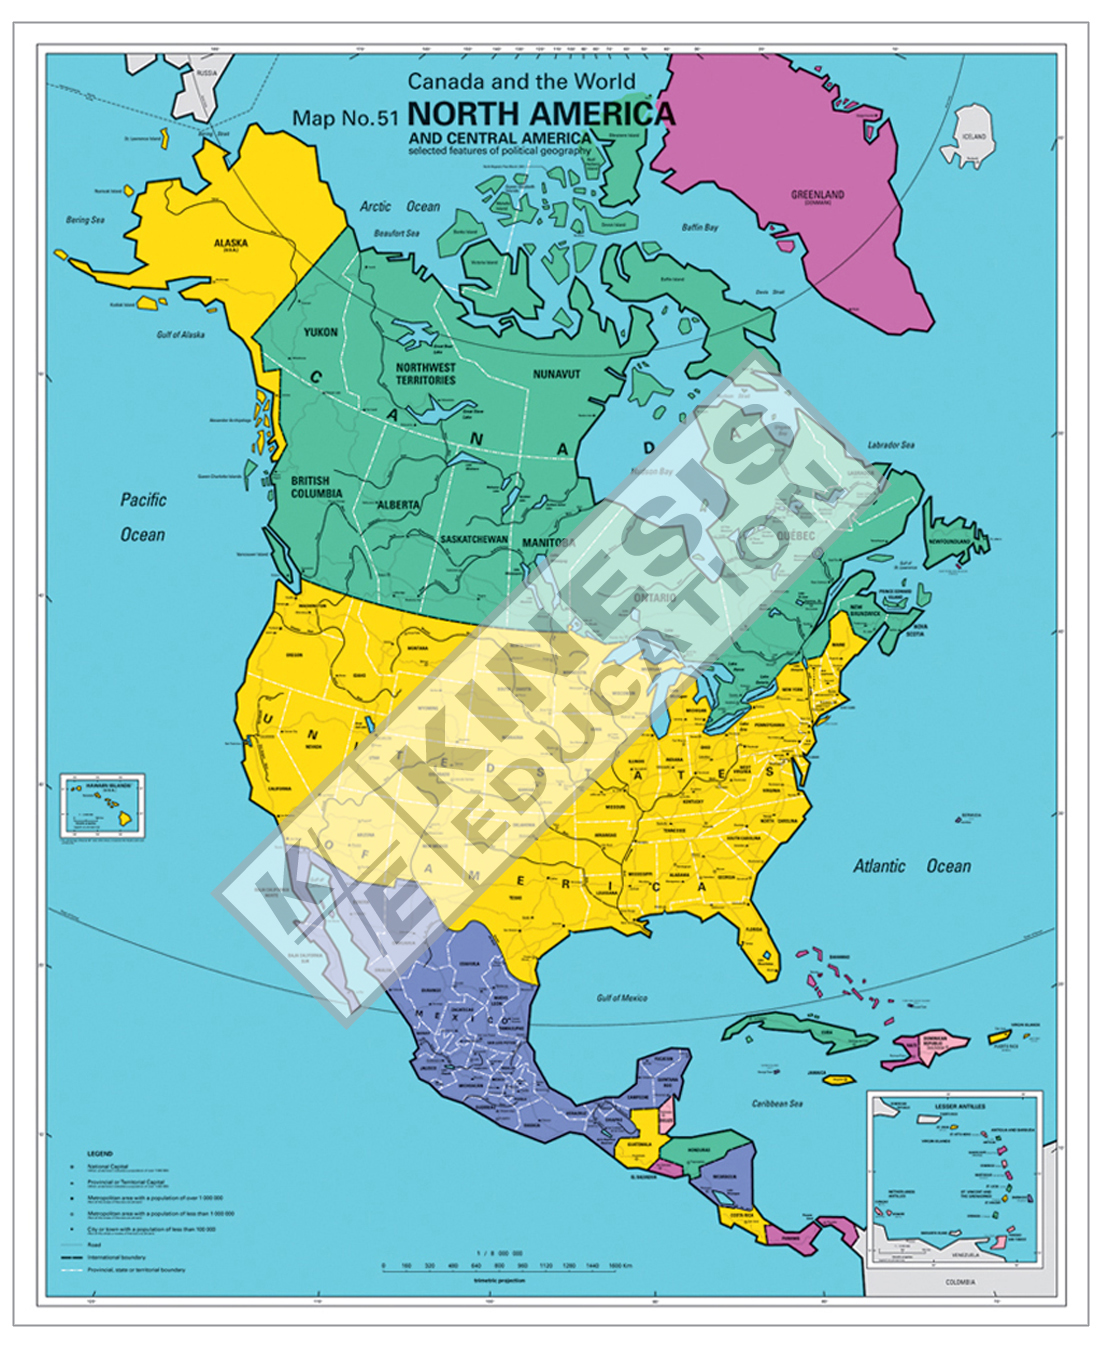 Picture of: North America Canada And The World Selected Features Of Political Geography Digital Map 4001277 Kinesis Education